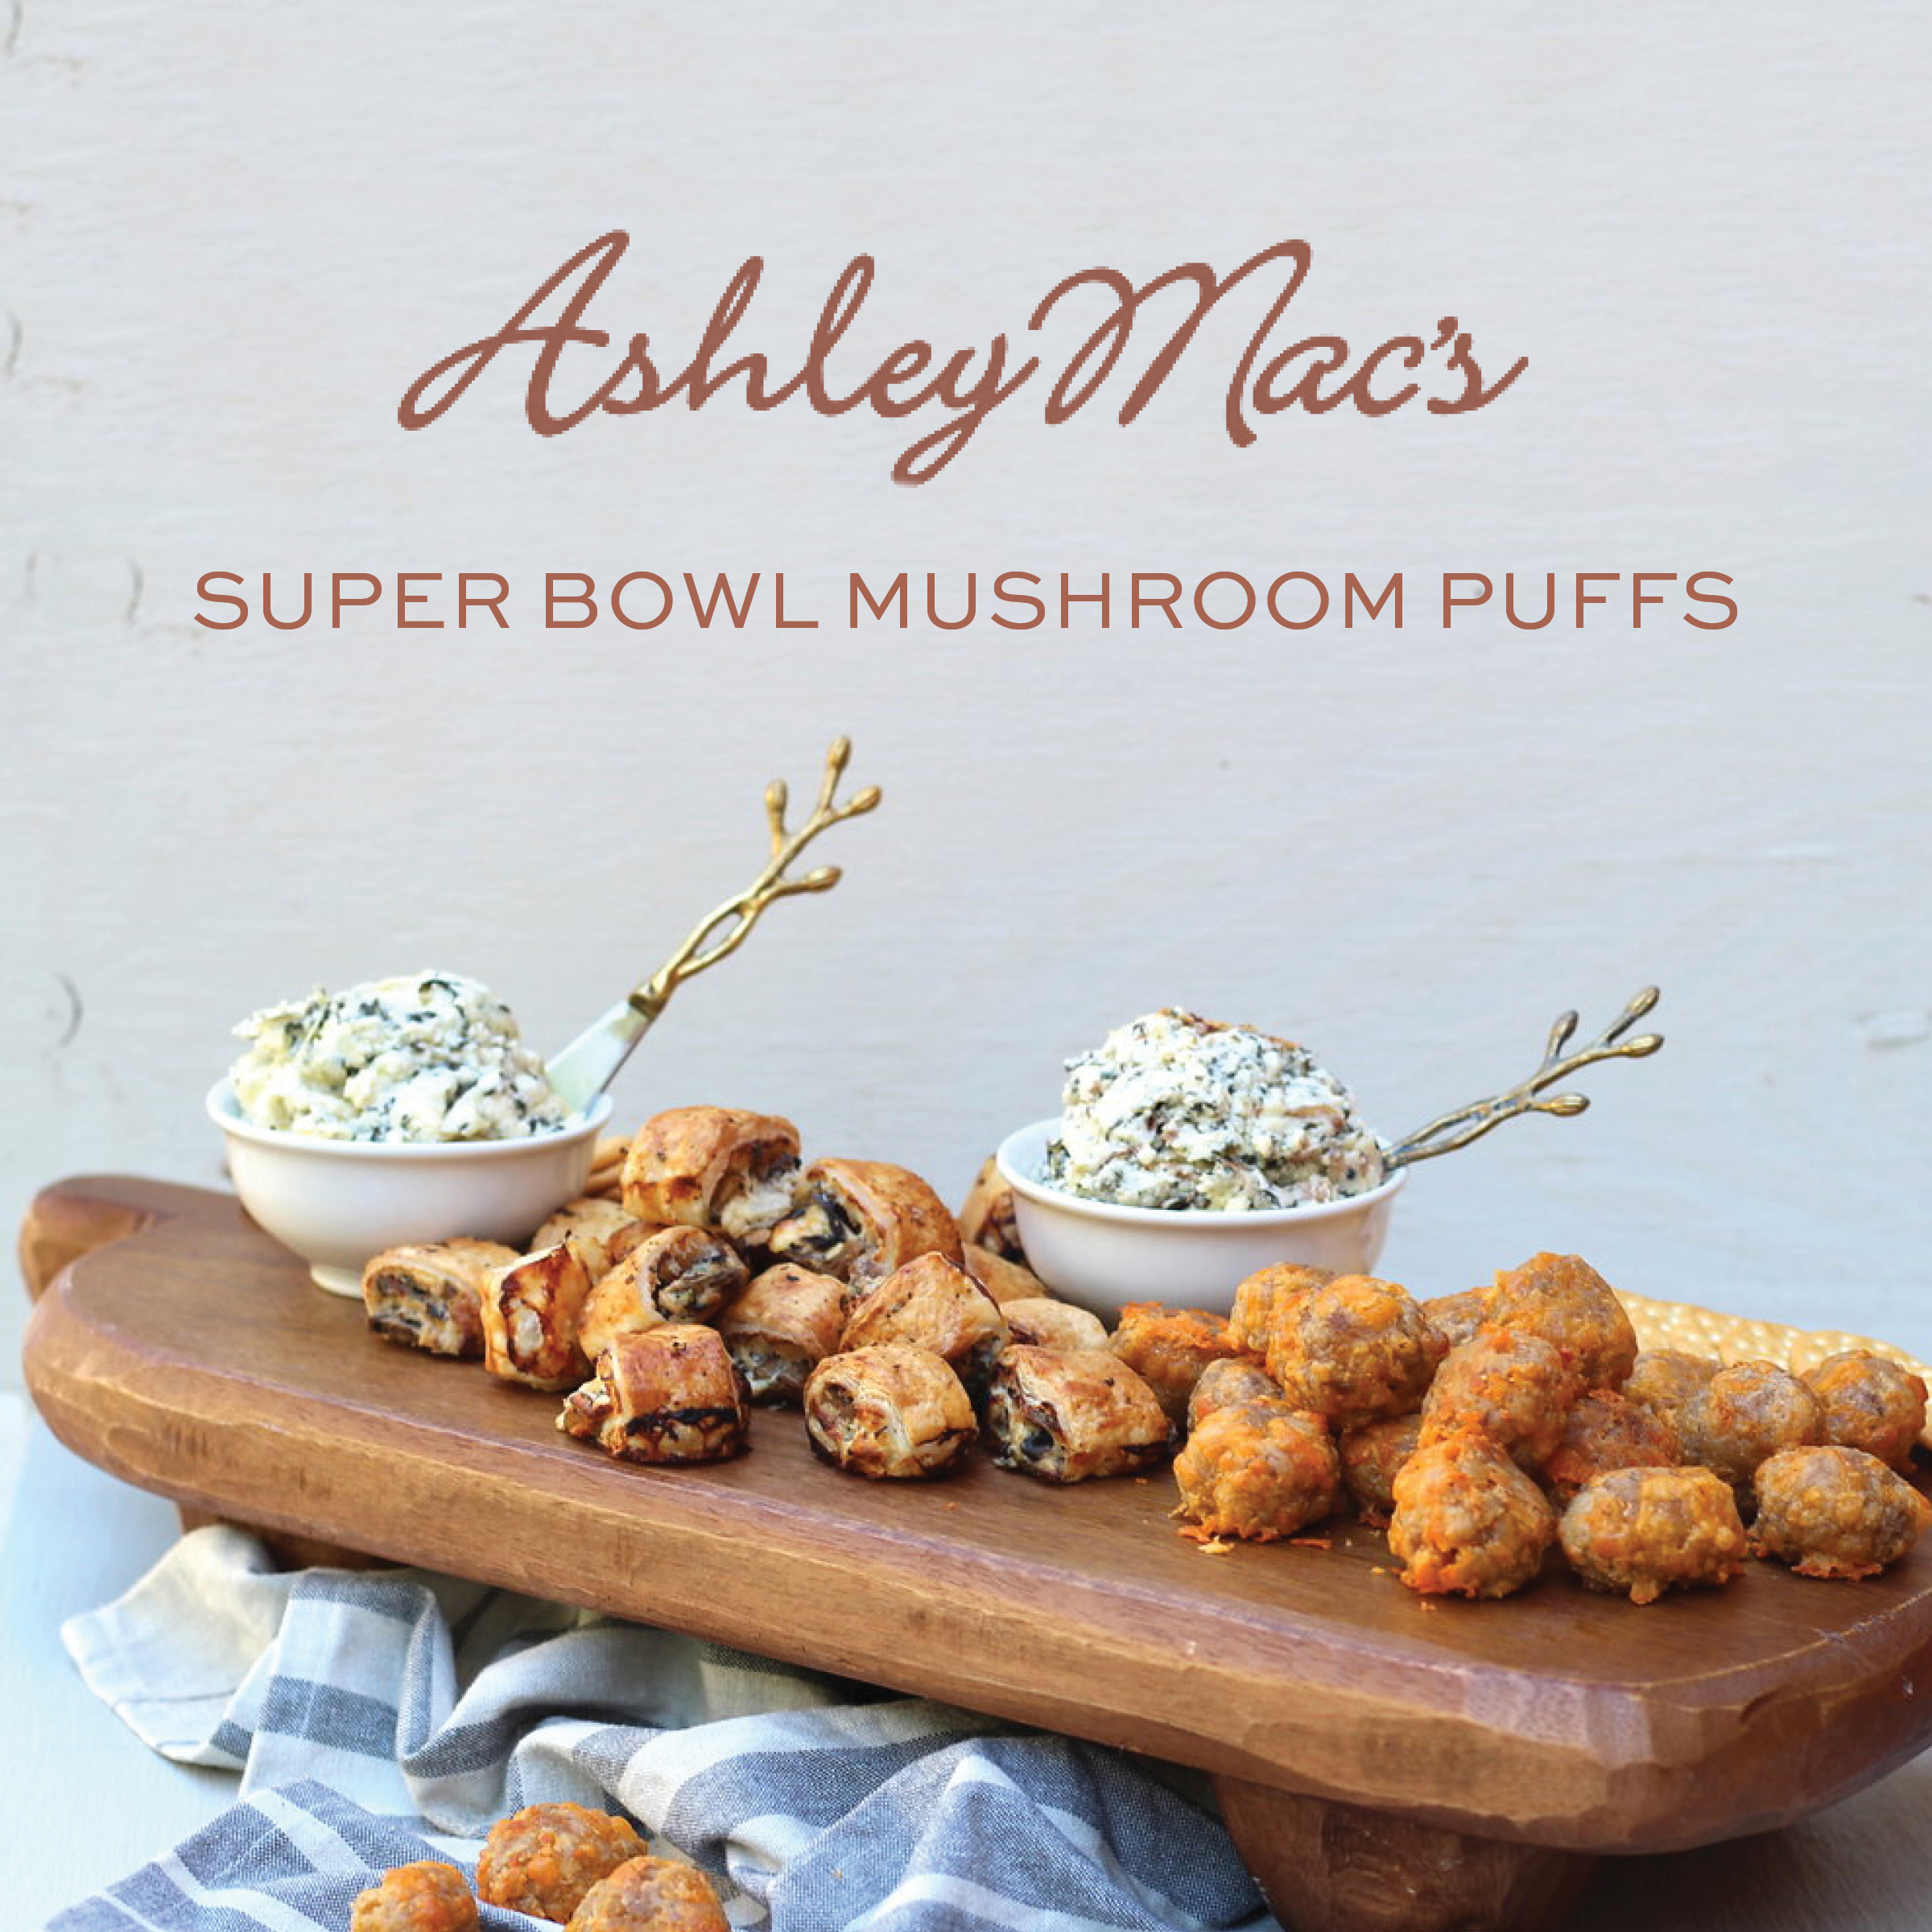 Ashley Mac's Super Bowl Party Menu